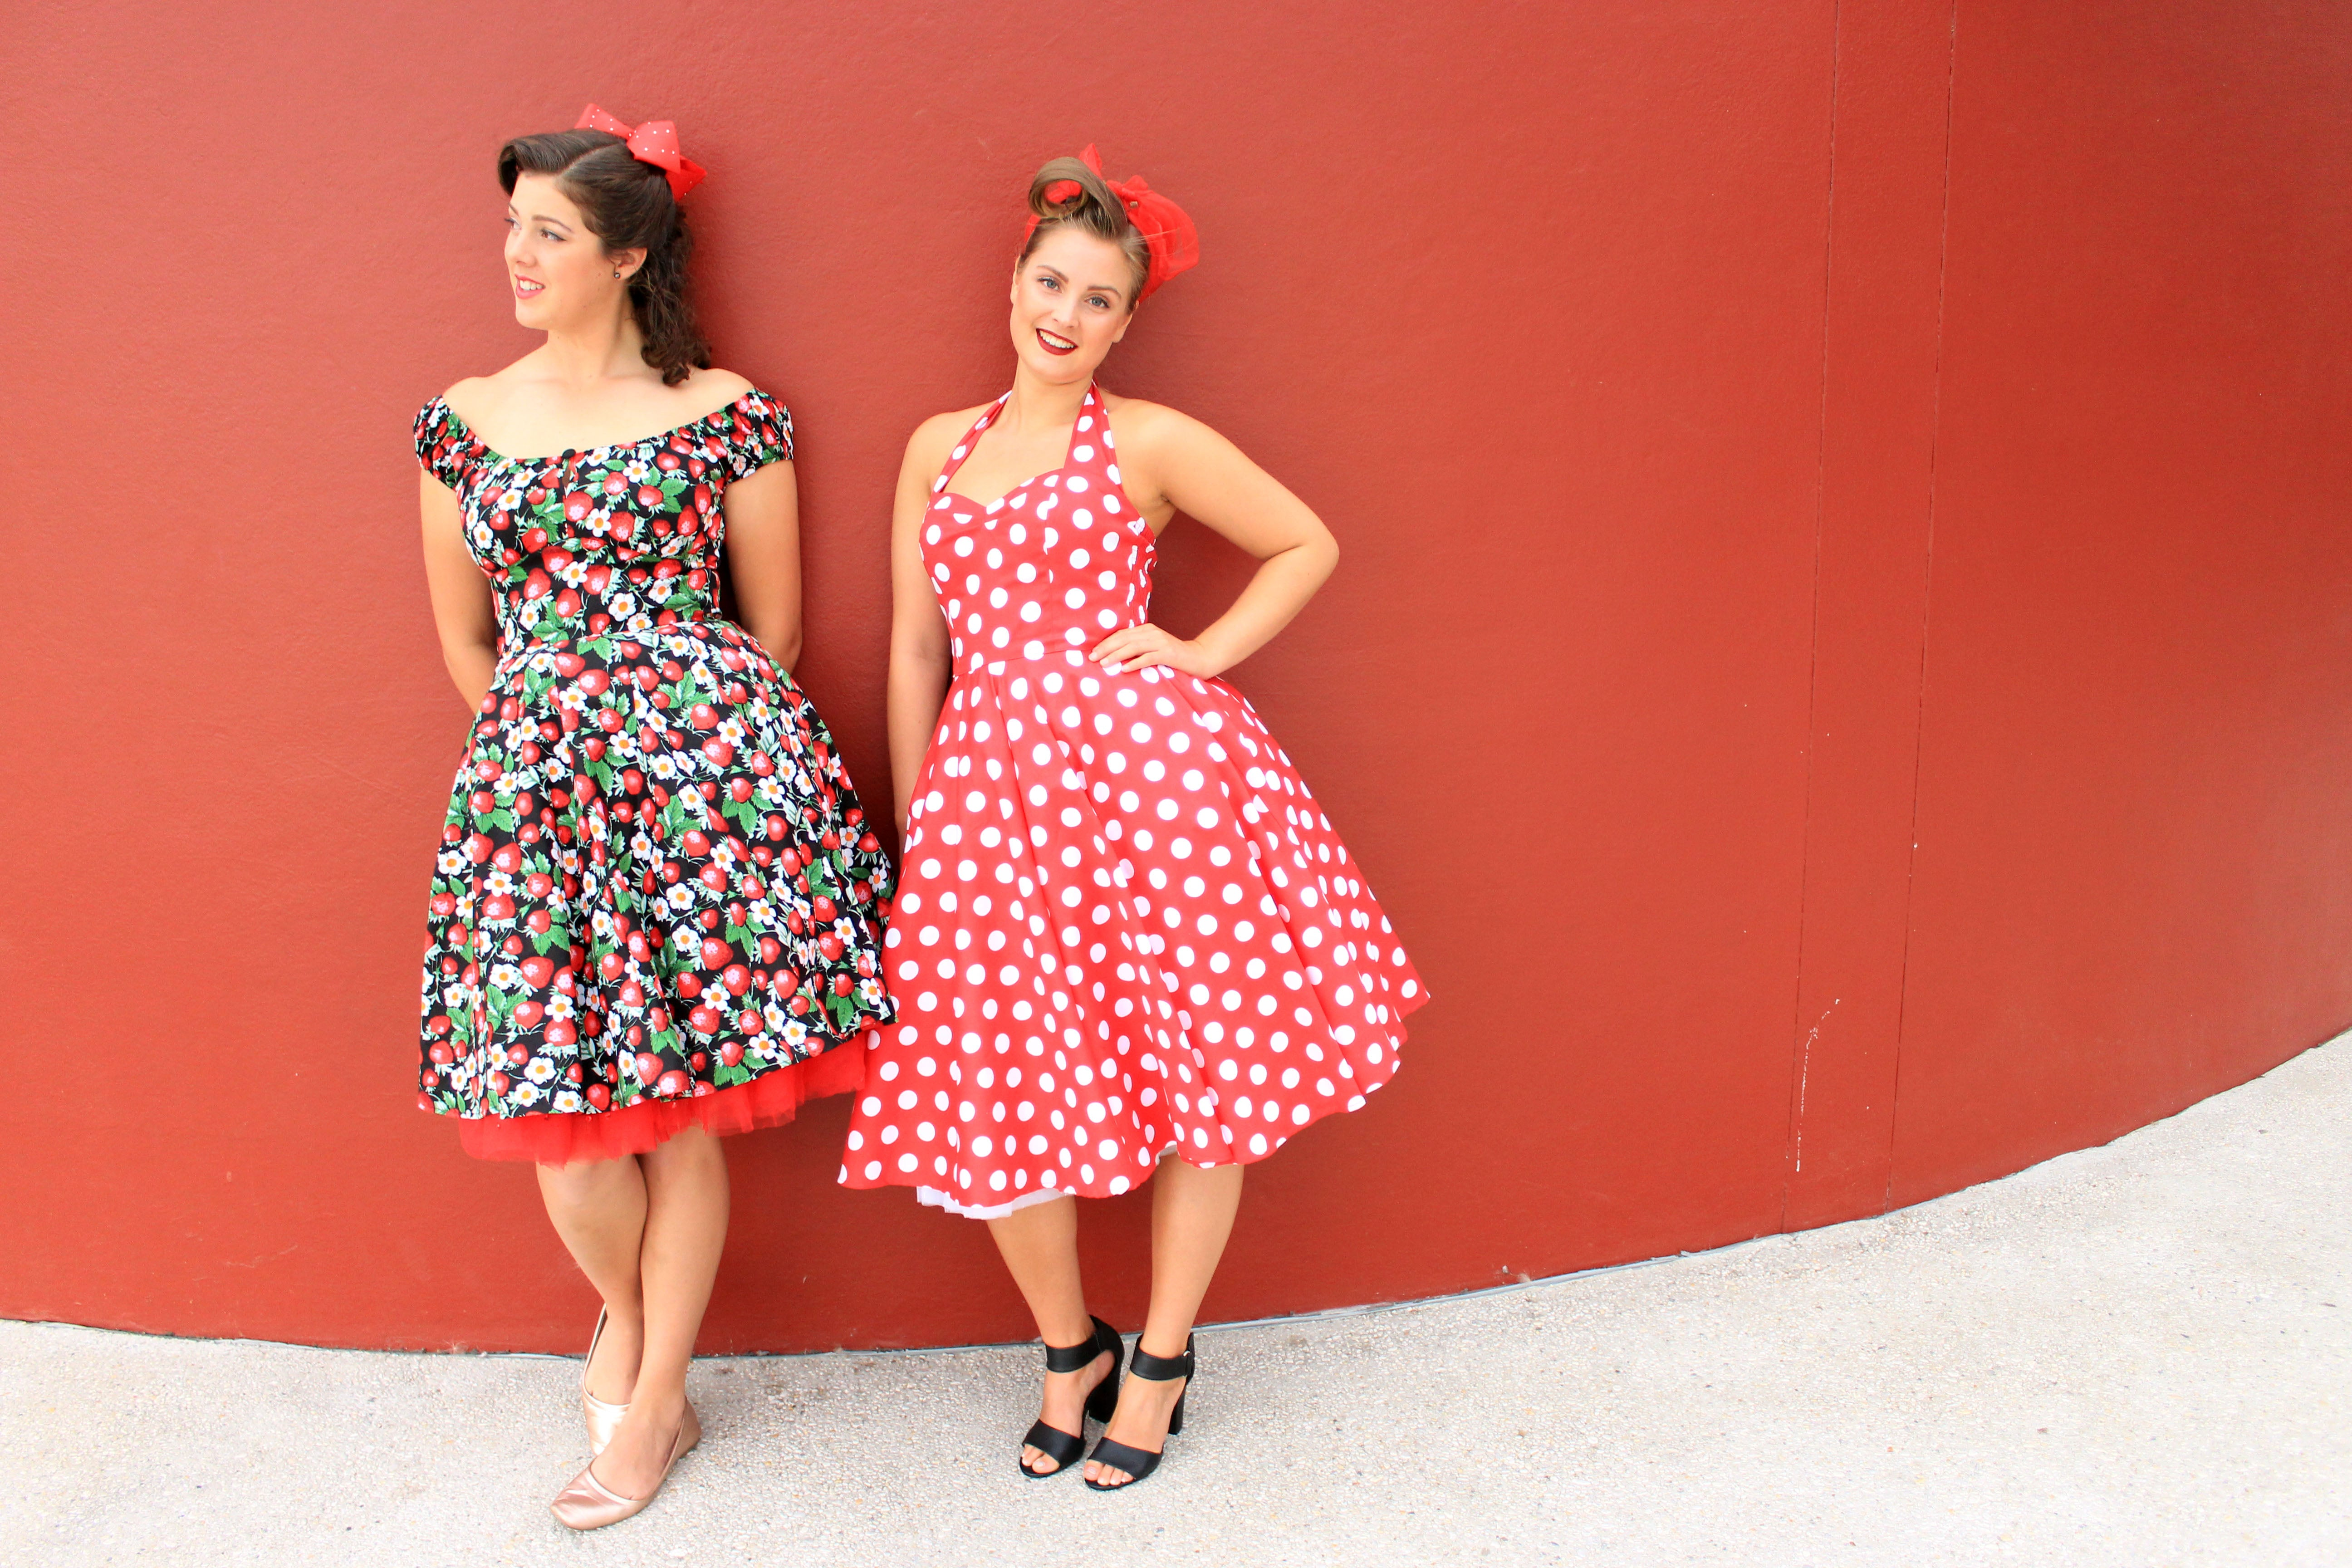 Mid-Dress | Strawberry Sundae | M